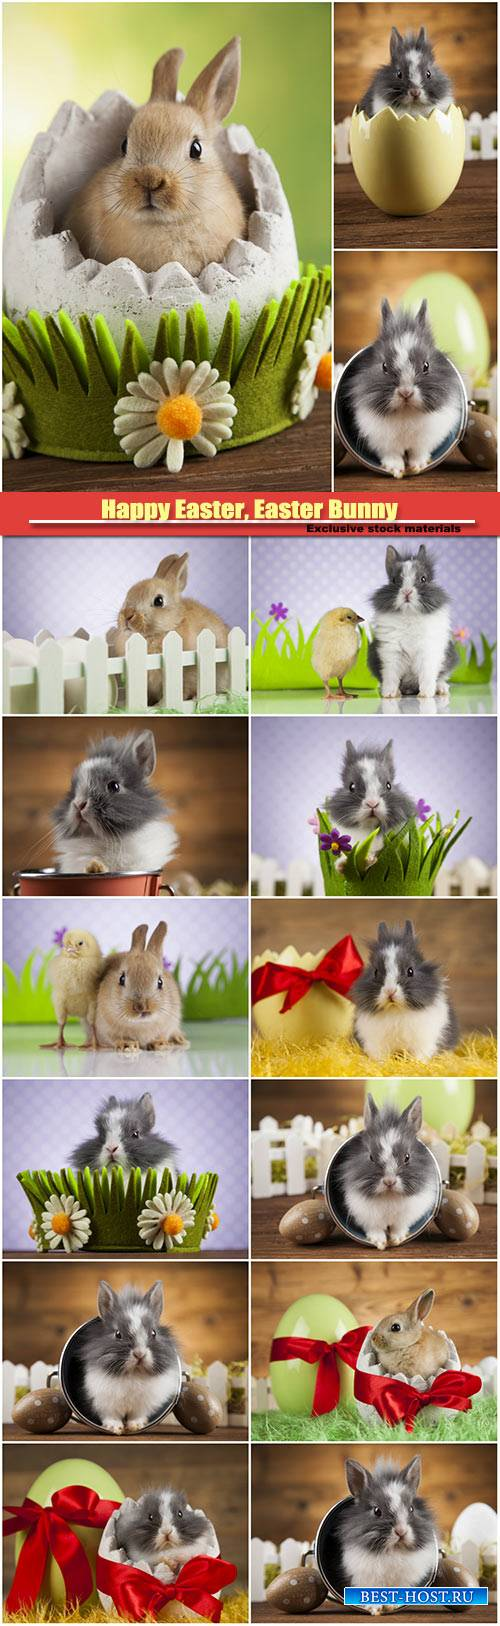 Happy Easter, Easter Bunny